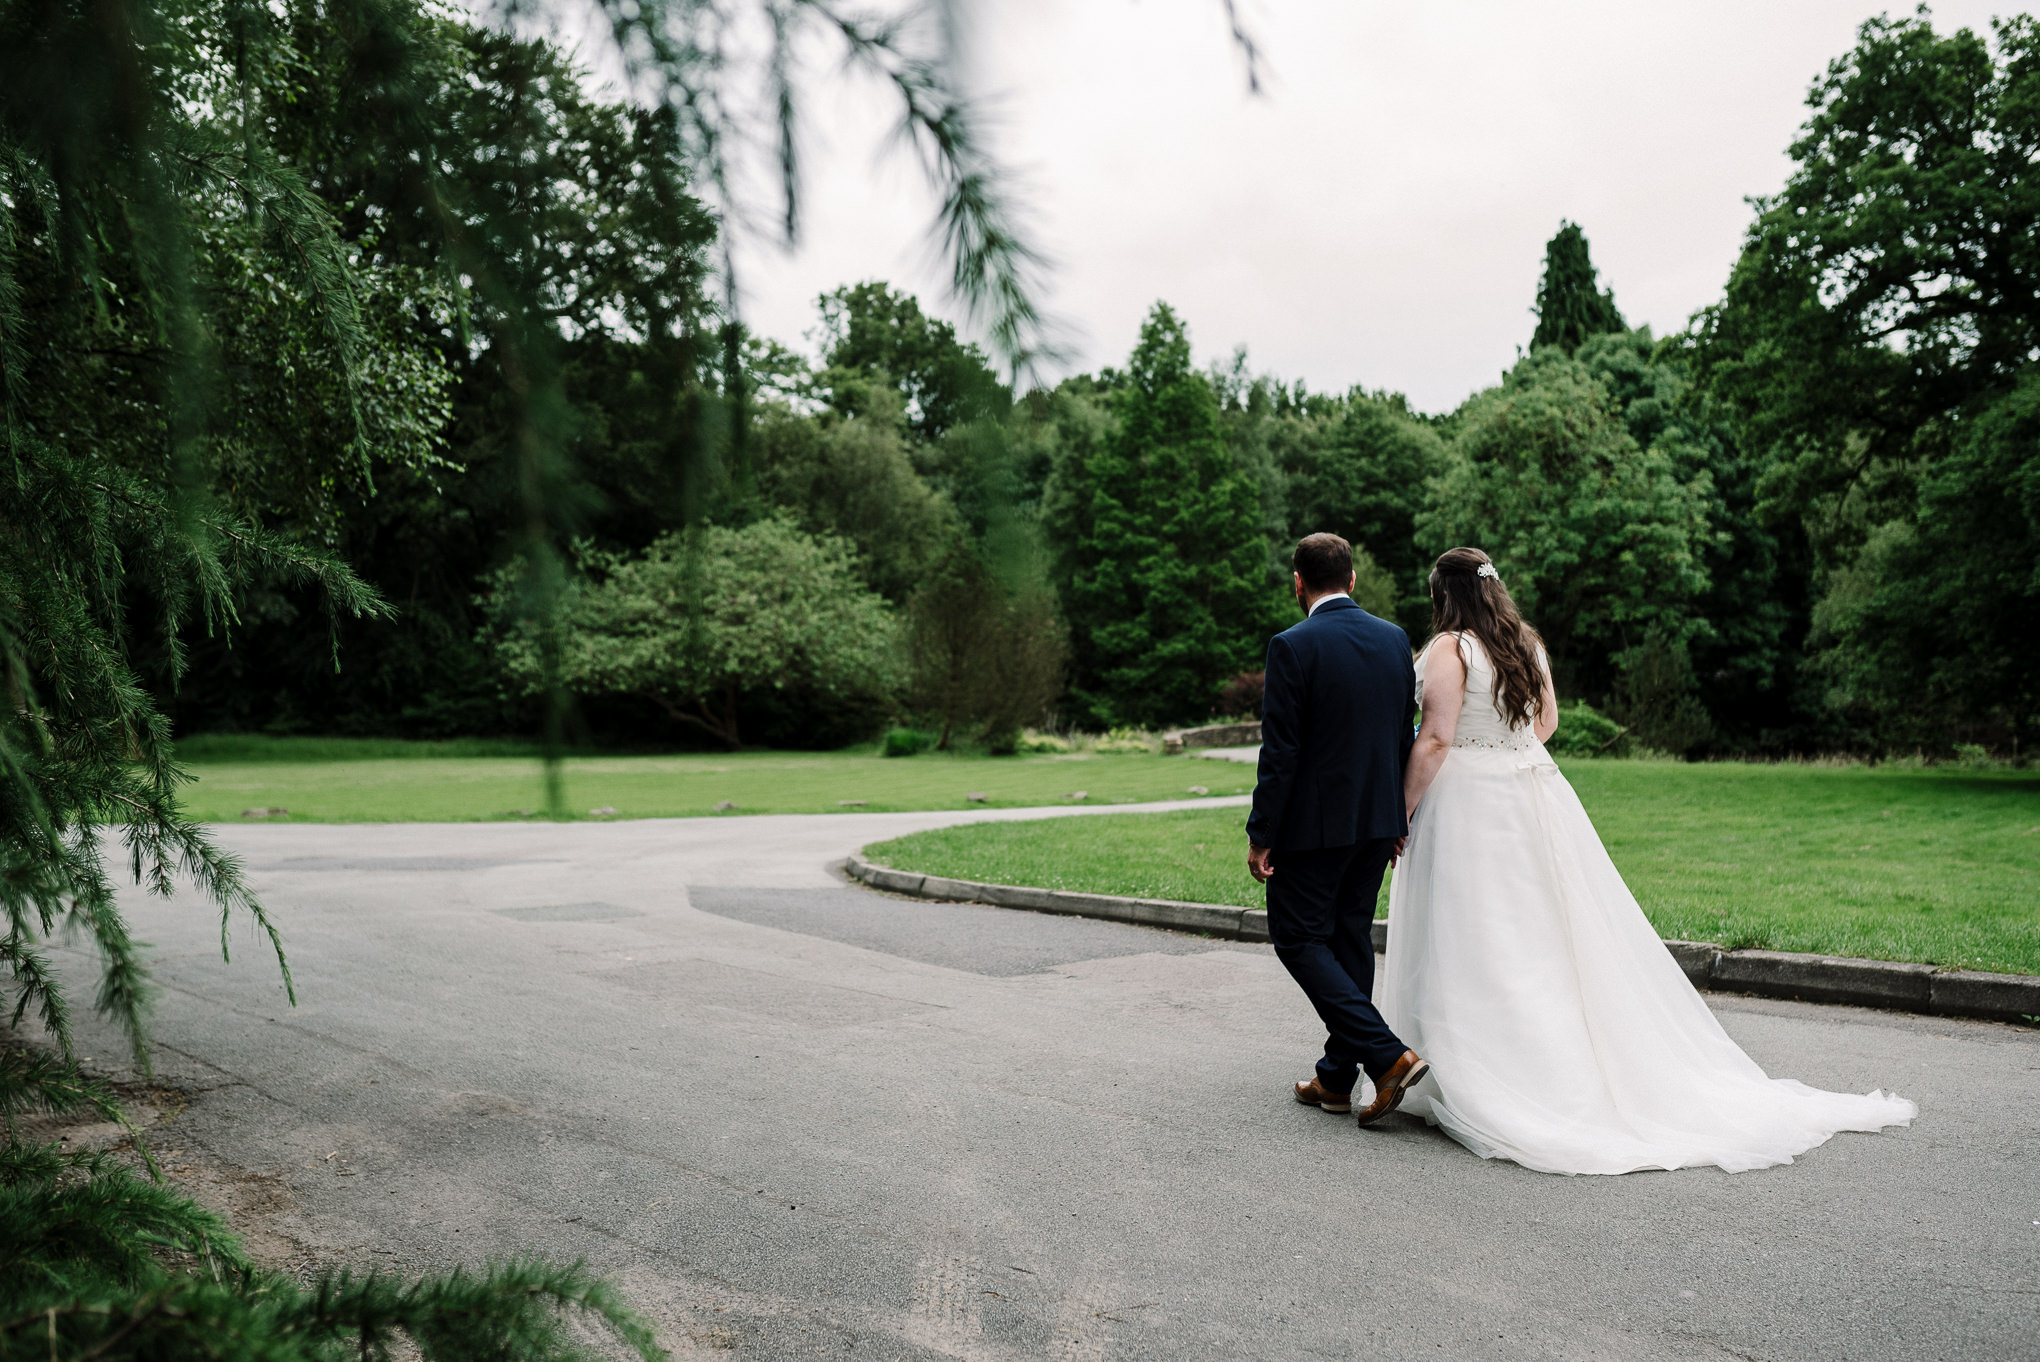 Natural photo of the bride and groom walking through the grounds at Rivington Hall Barn in Lancashire.